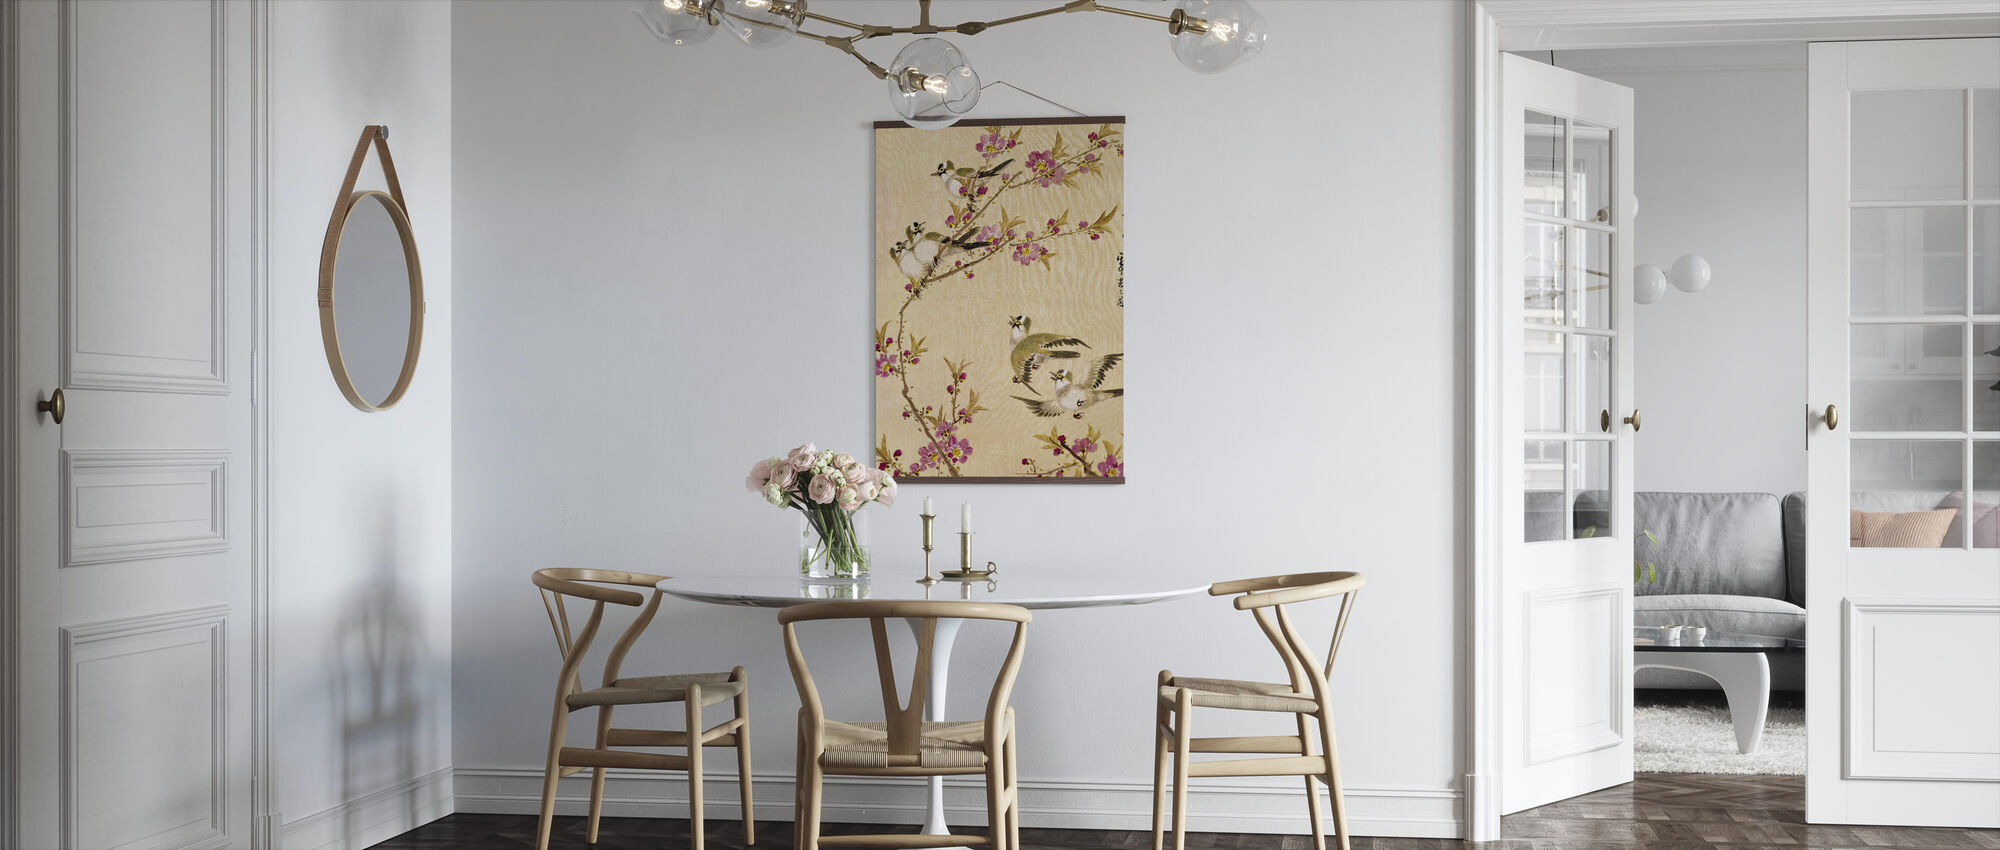 Five Birds with Pink Blossoms - Poster - Kitchen